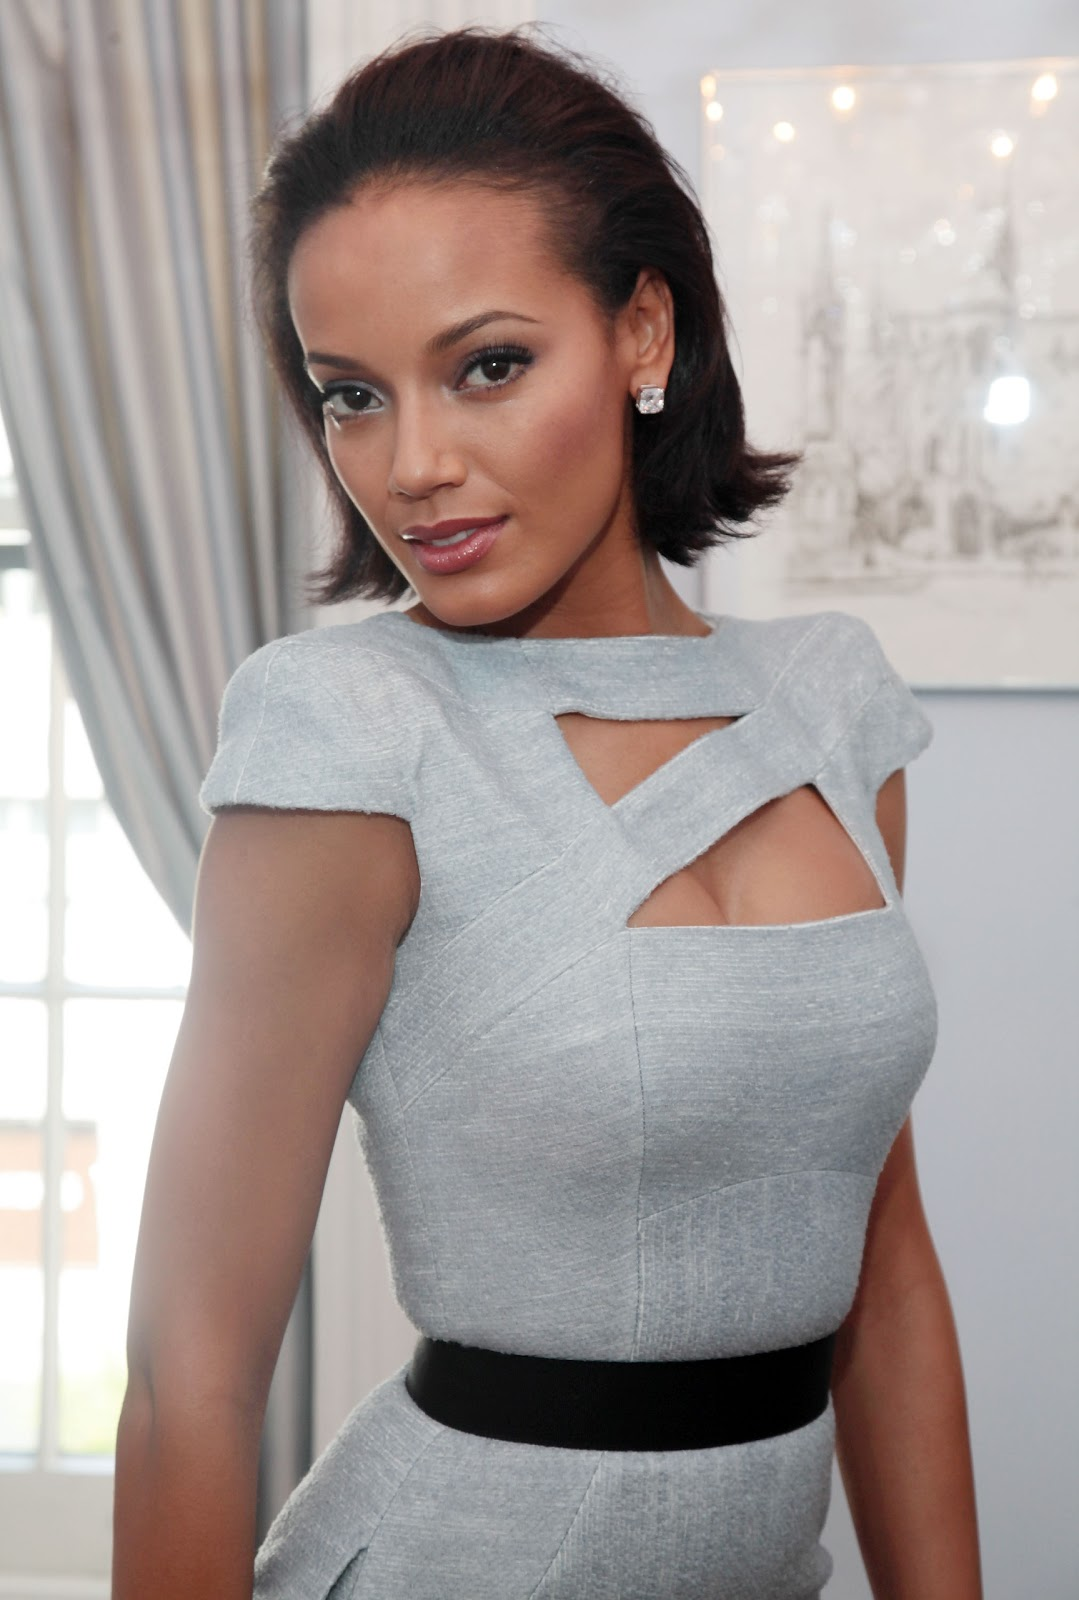 Selita Ebanks Photos